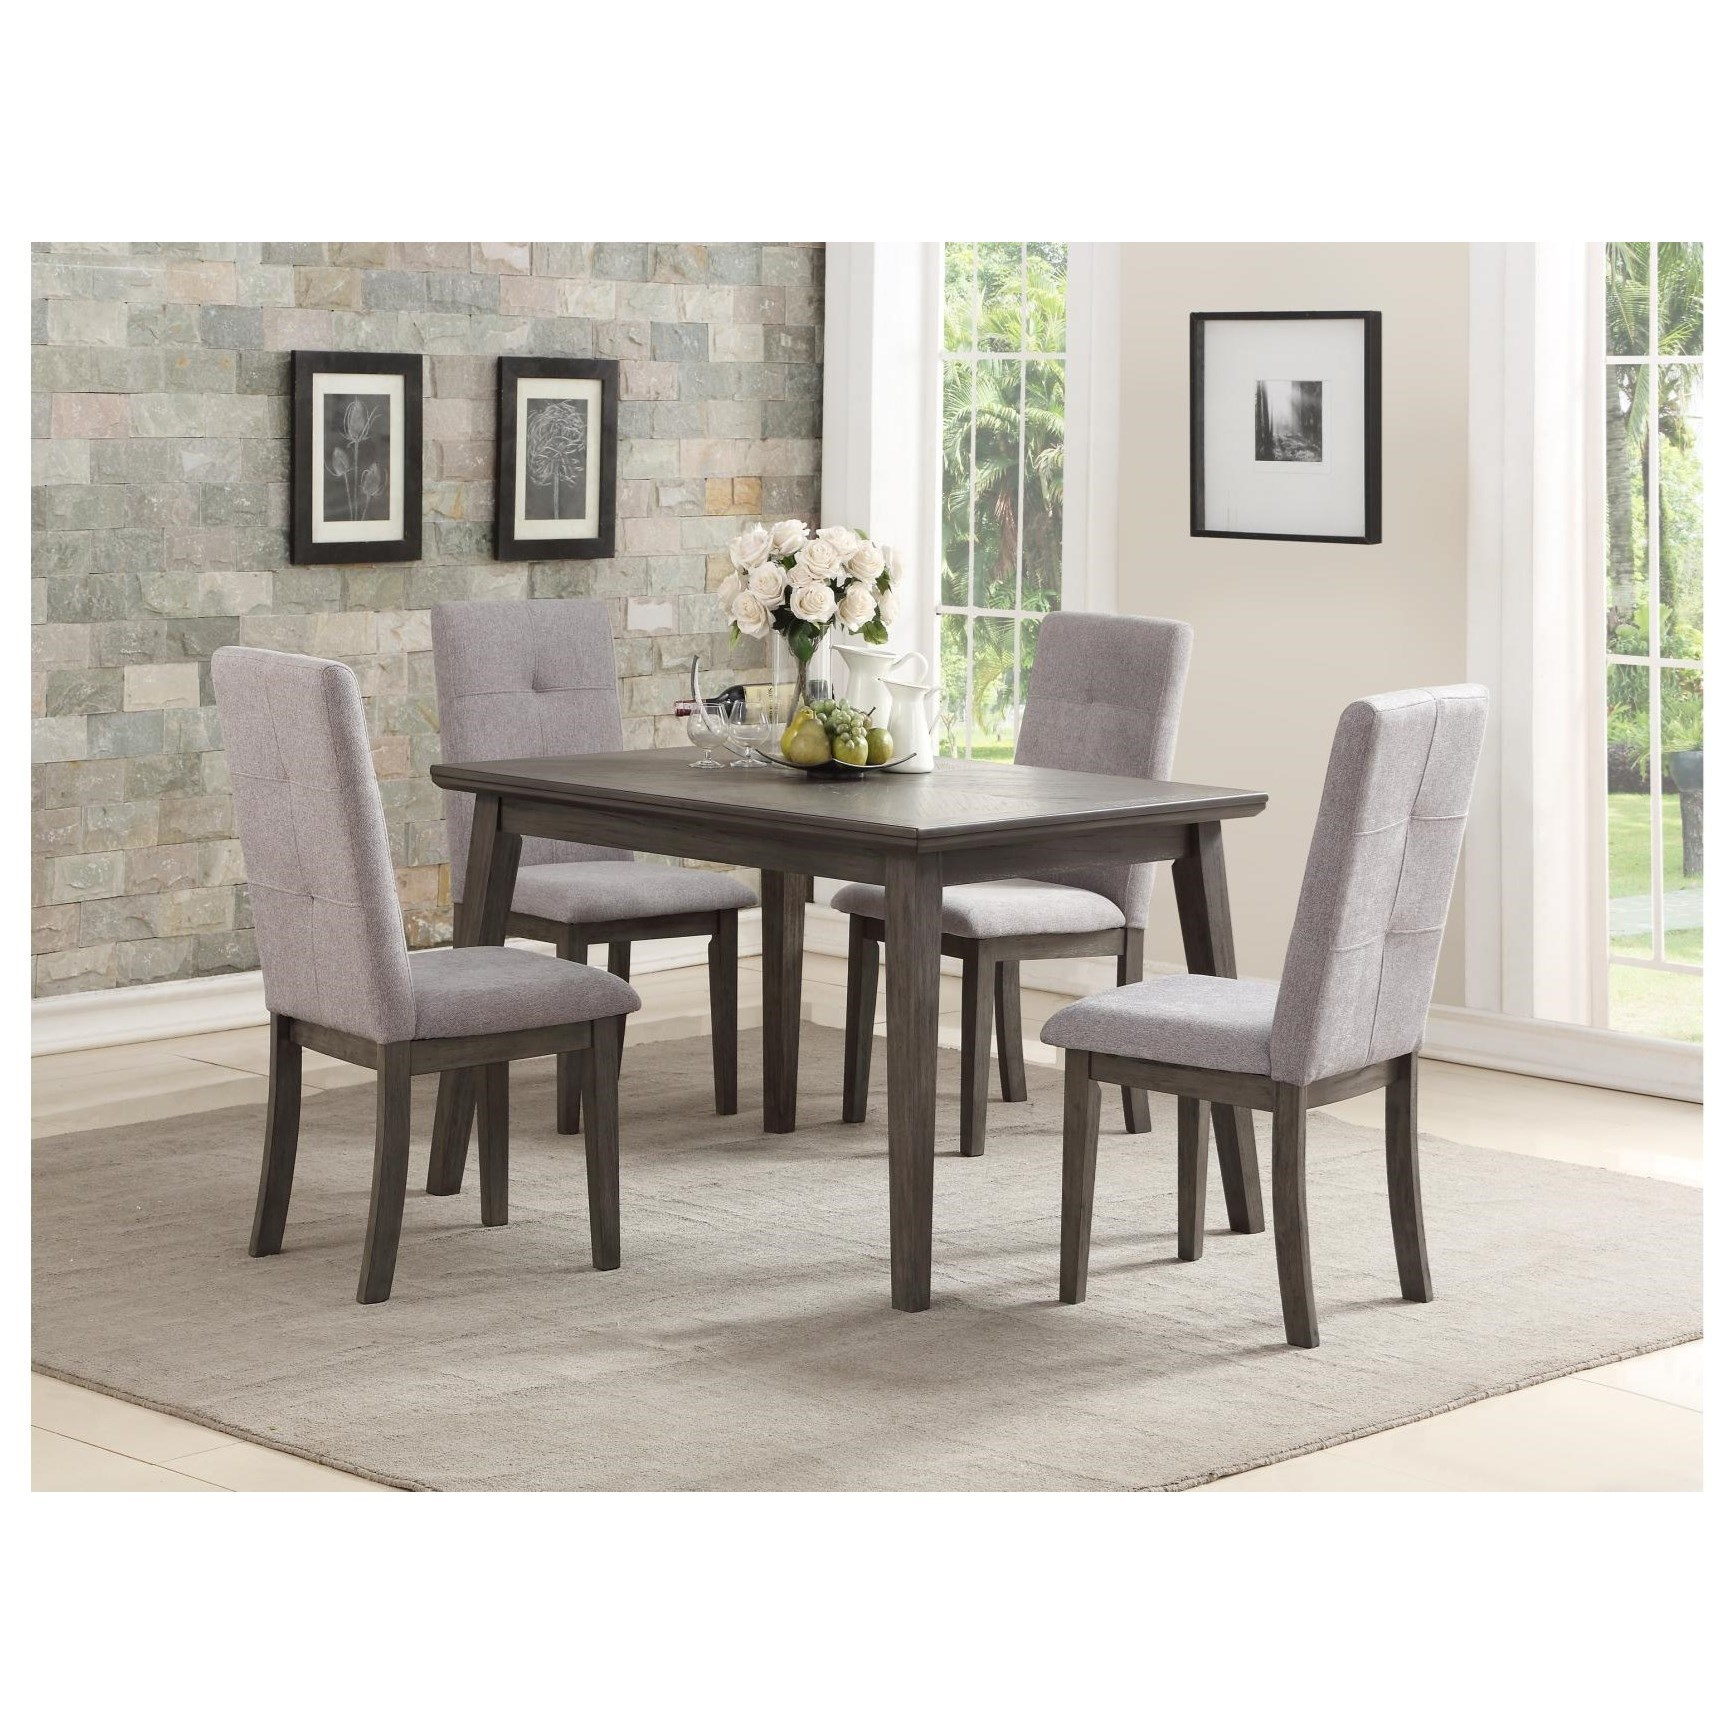 University 5 Piece Chair & Table Set by Homelegance at Beck's Furniture